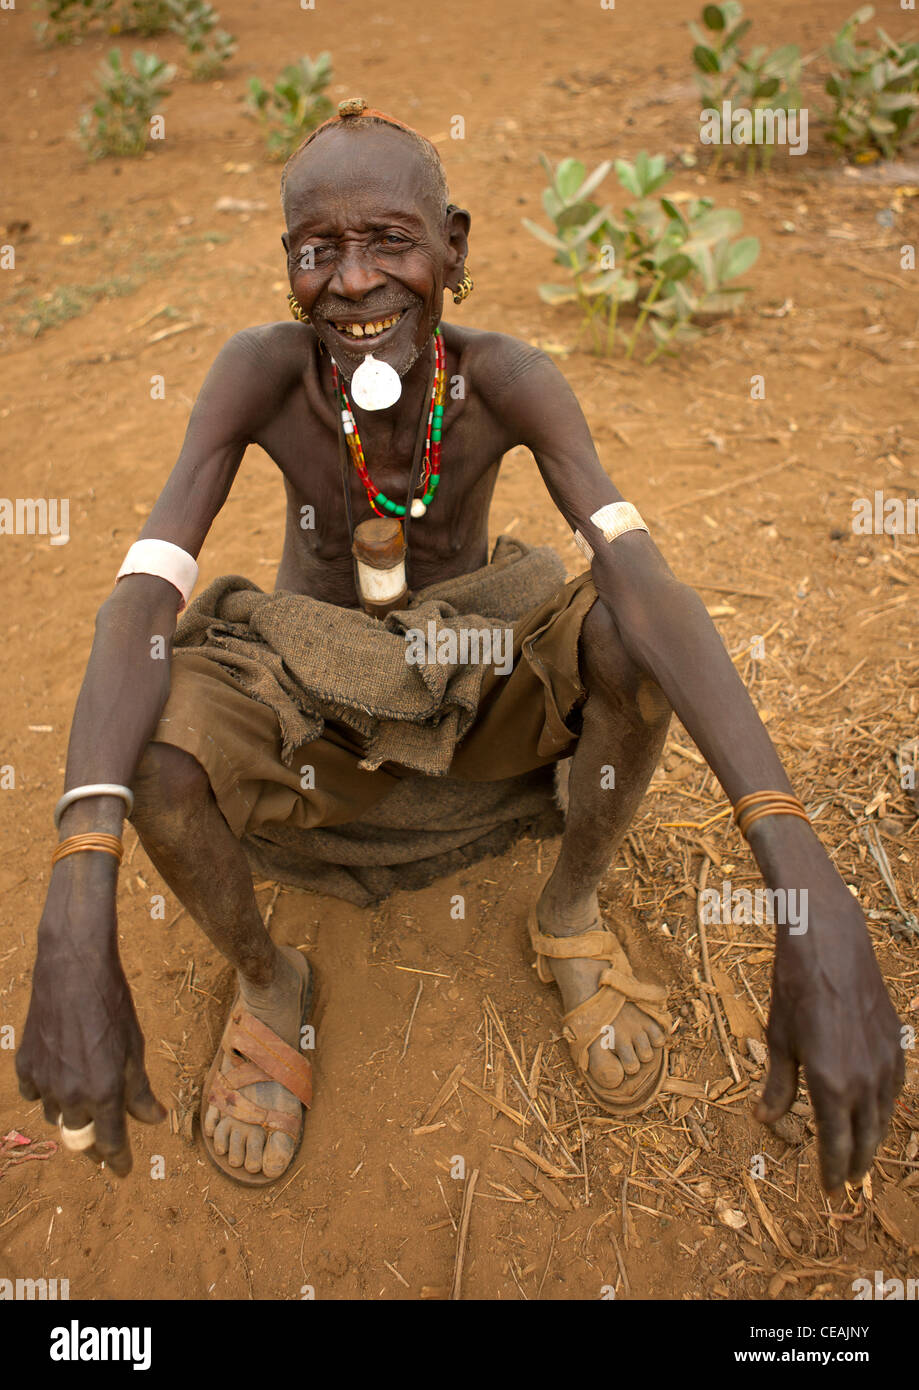 Senior Dassanech Man With Tricky Look And Original Clay Hairstyle Omorate Ethiopia - Stock Image